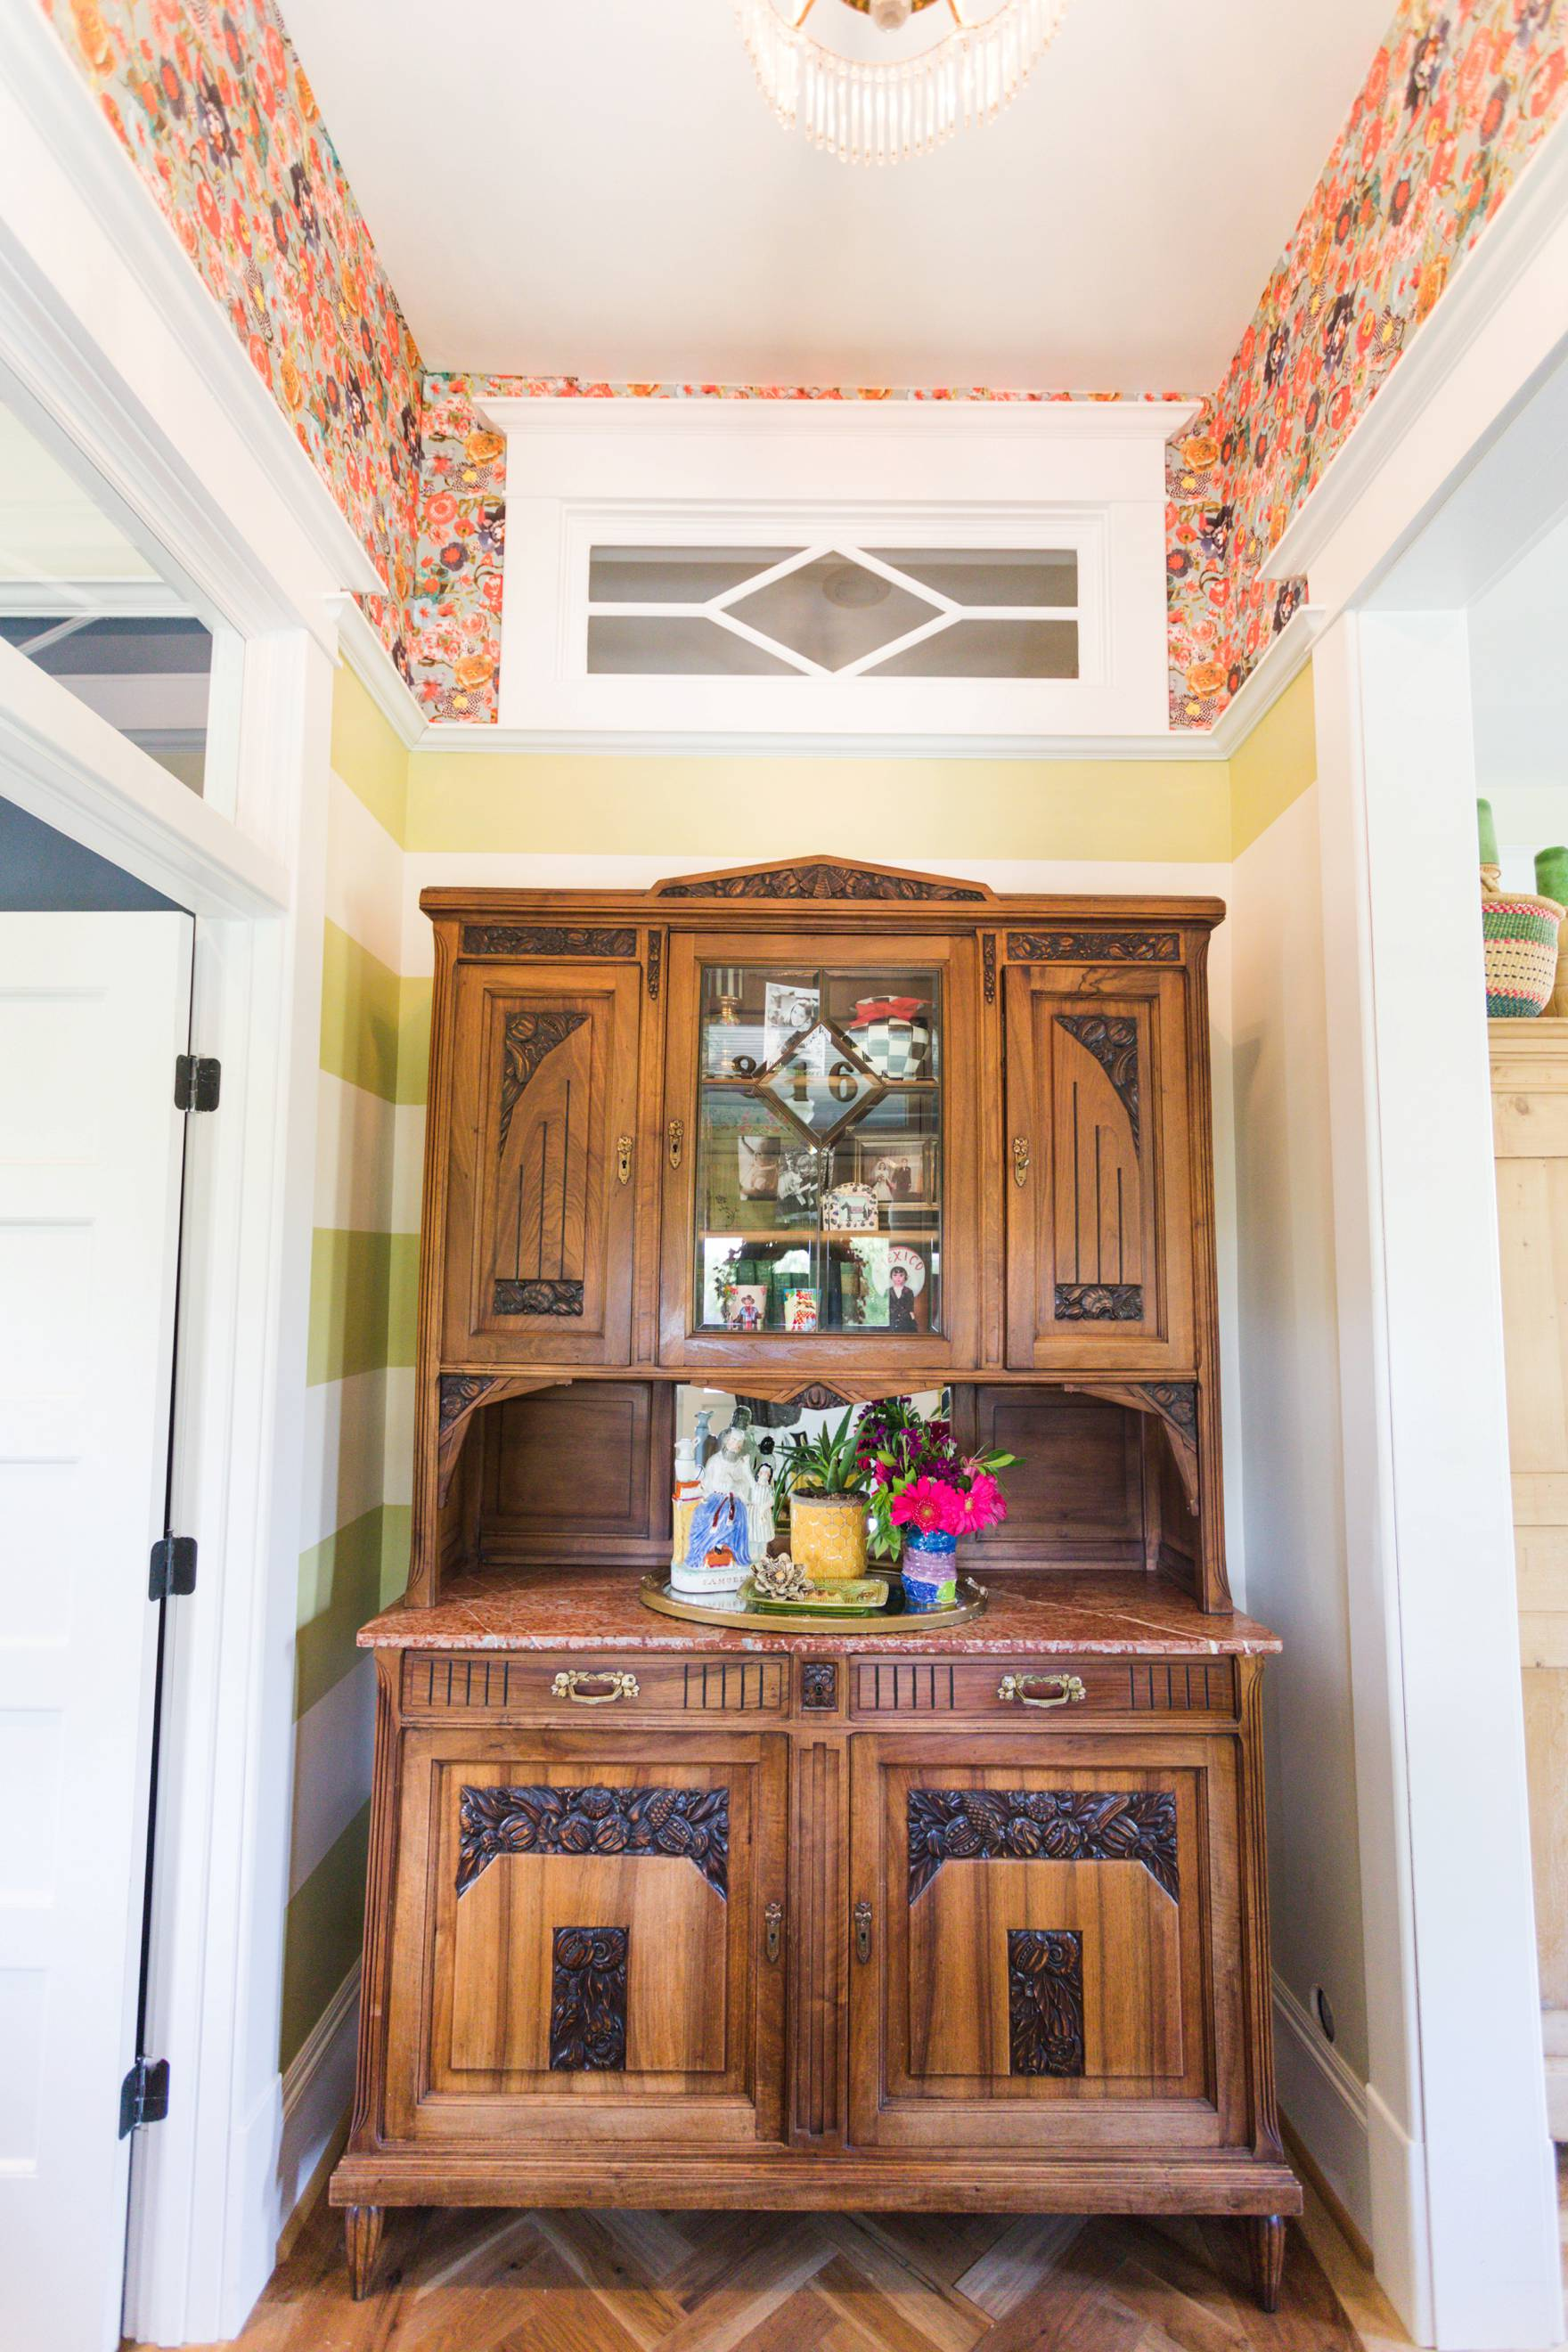 Home Tour of Boho Farm and Home in Downtown Phoenix - cottage brick style home from 1903 // entry way details transom and wallpaper for top half of wall.